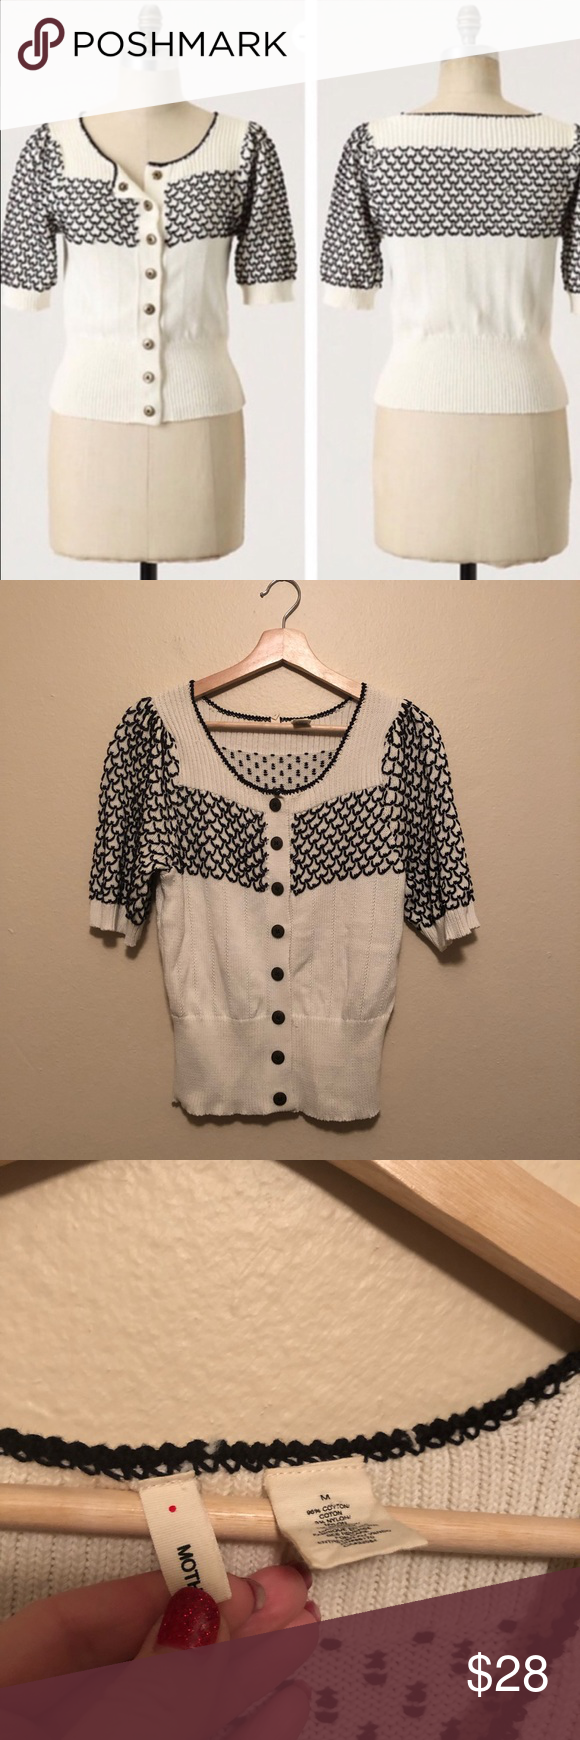 Anthropologie Moth Short Sleeve Cardigan Condition: Great